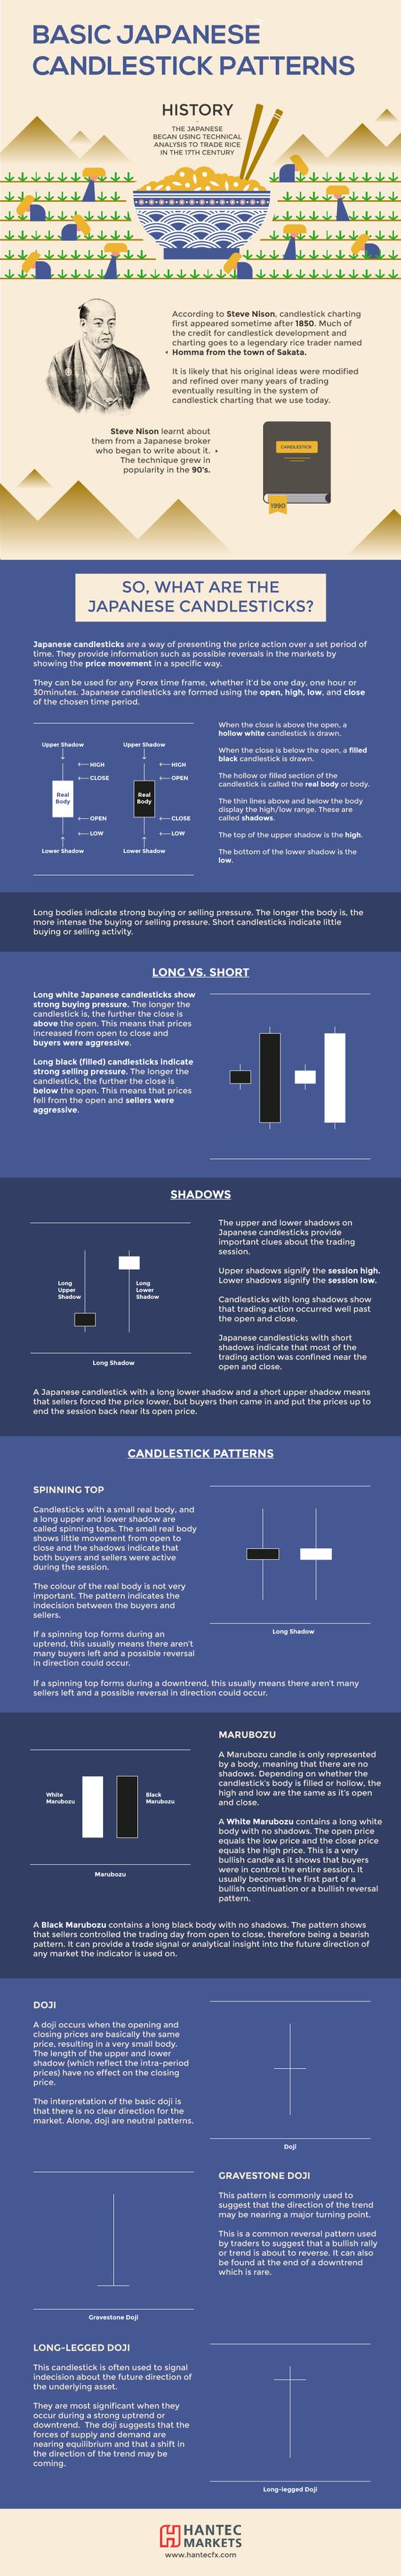 BASIC JAPANESE CANDLESTICK PATTERNS #infographic #Business #ForexTrading http://www.tradingprofits4u.com/